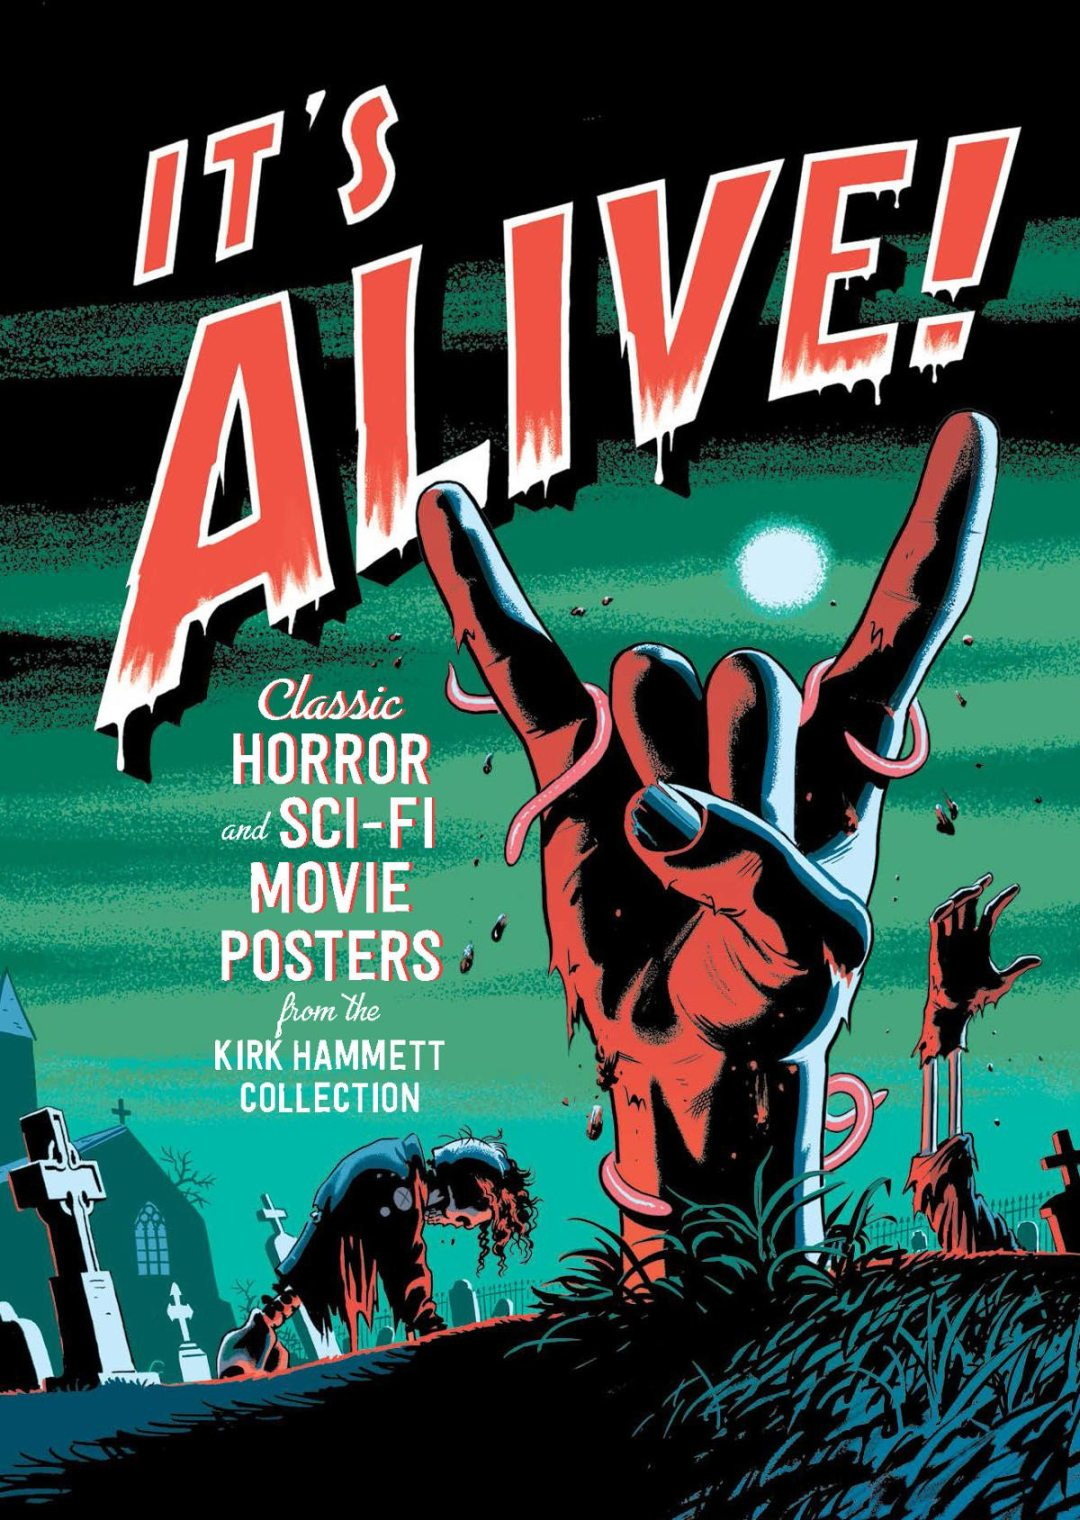 Kirk Hammett's 'It's Alive!' Collection is Coming!